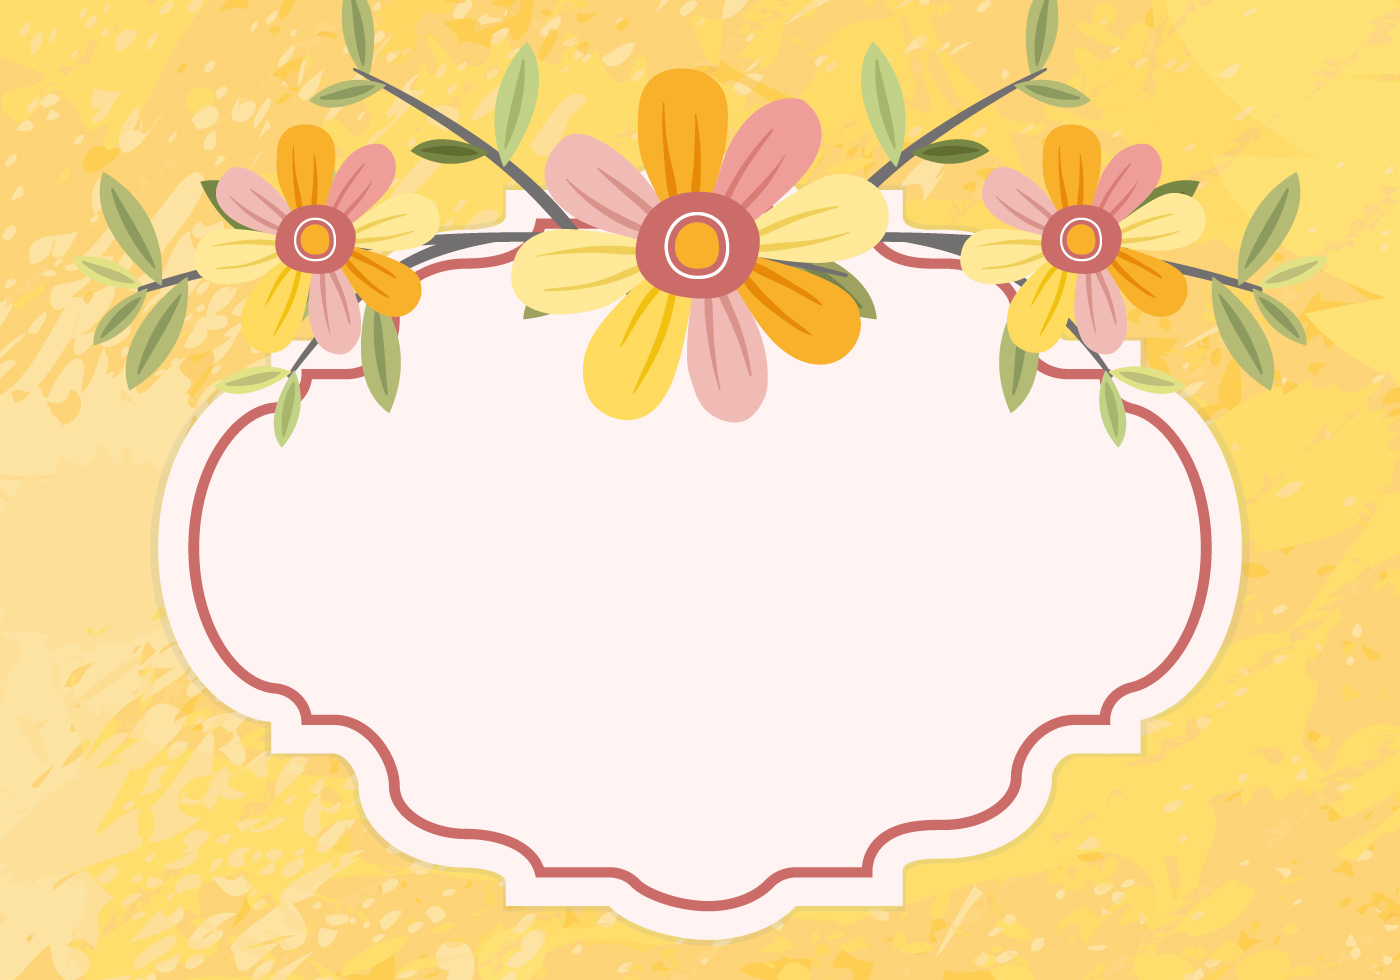 Graphic floral images clipart transparent stock Floral frame Vector Graphic — flowers, swirls, leaves clipart transparent stock